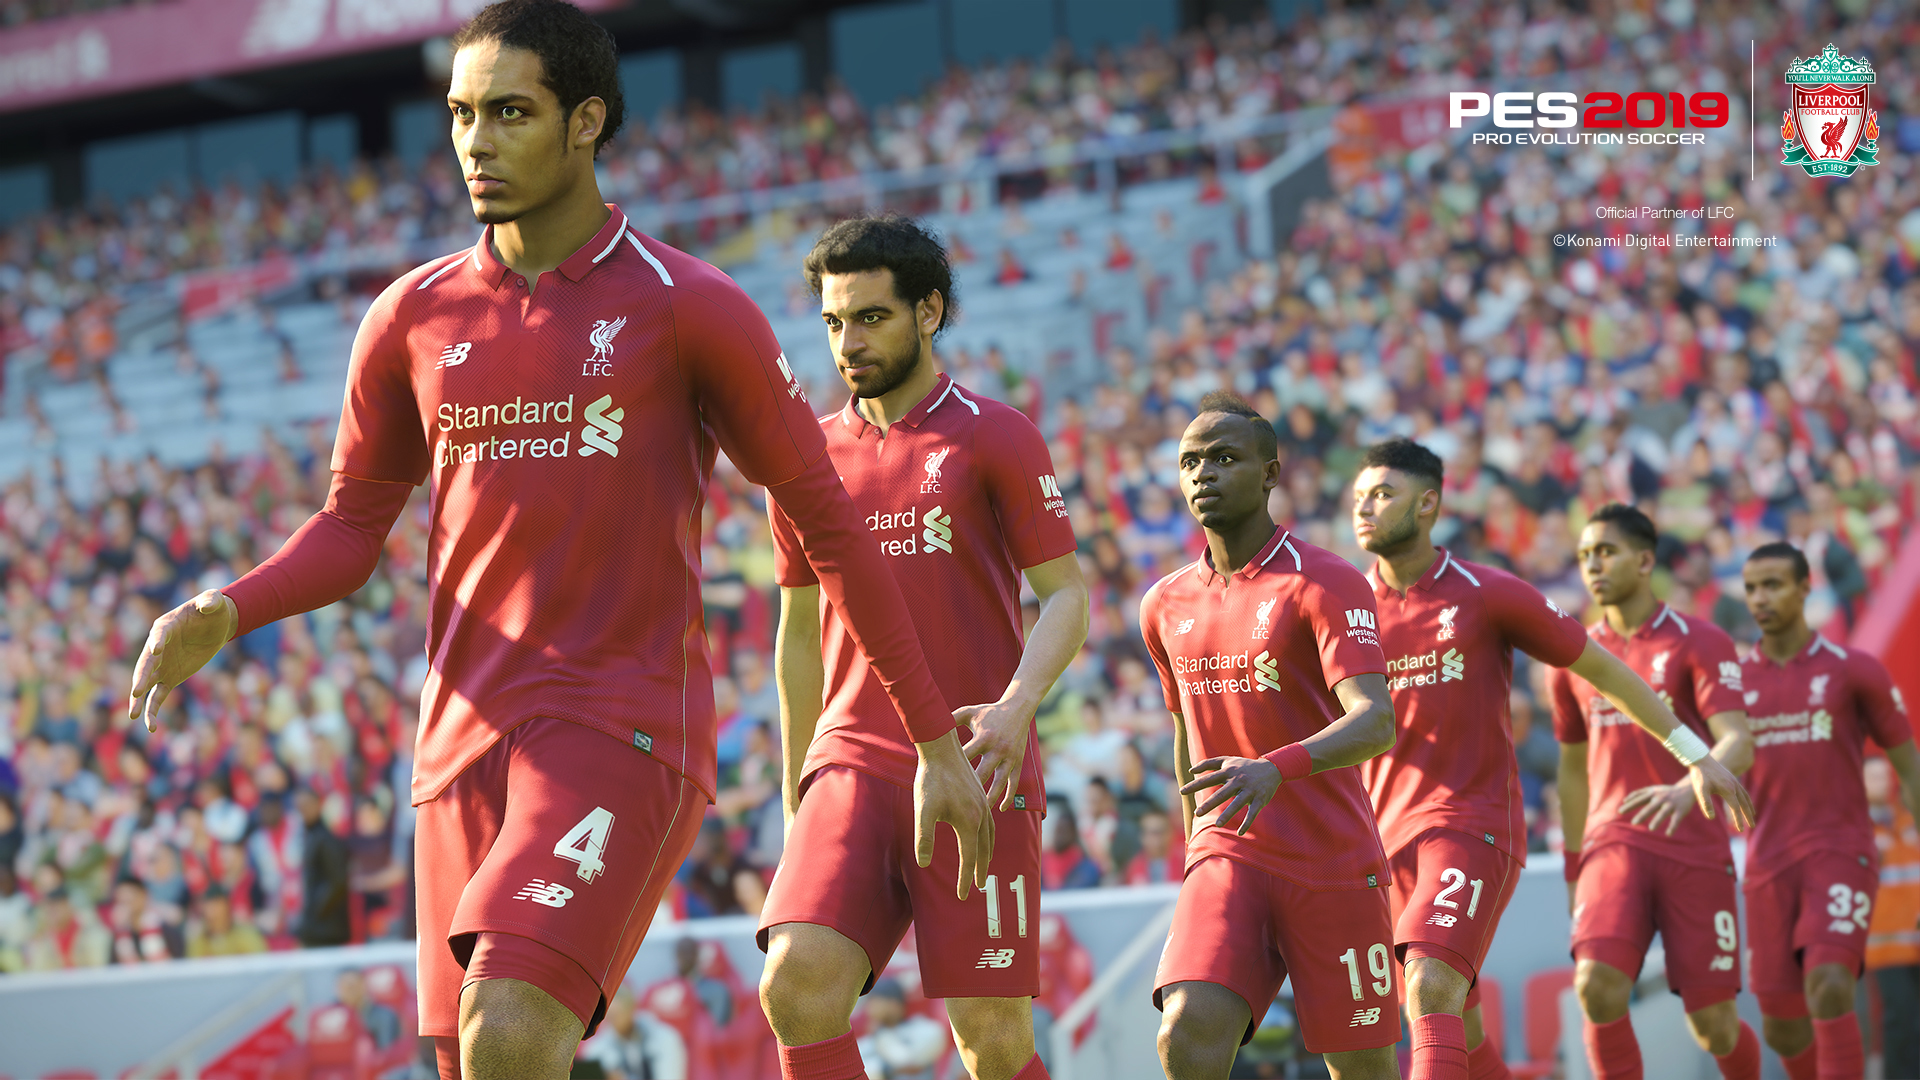 f60540dfab0 Pro Evolution Soccer 2019 Review - A Great Game in Need of Fixing